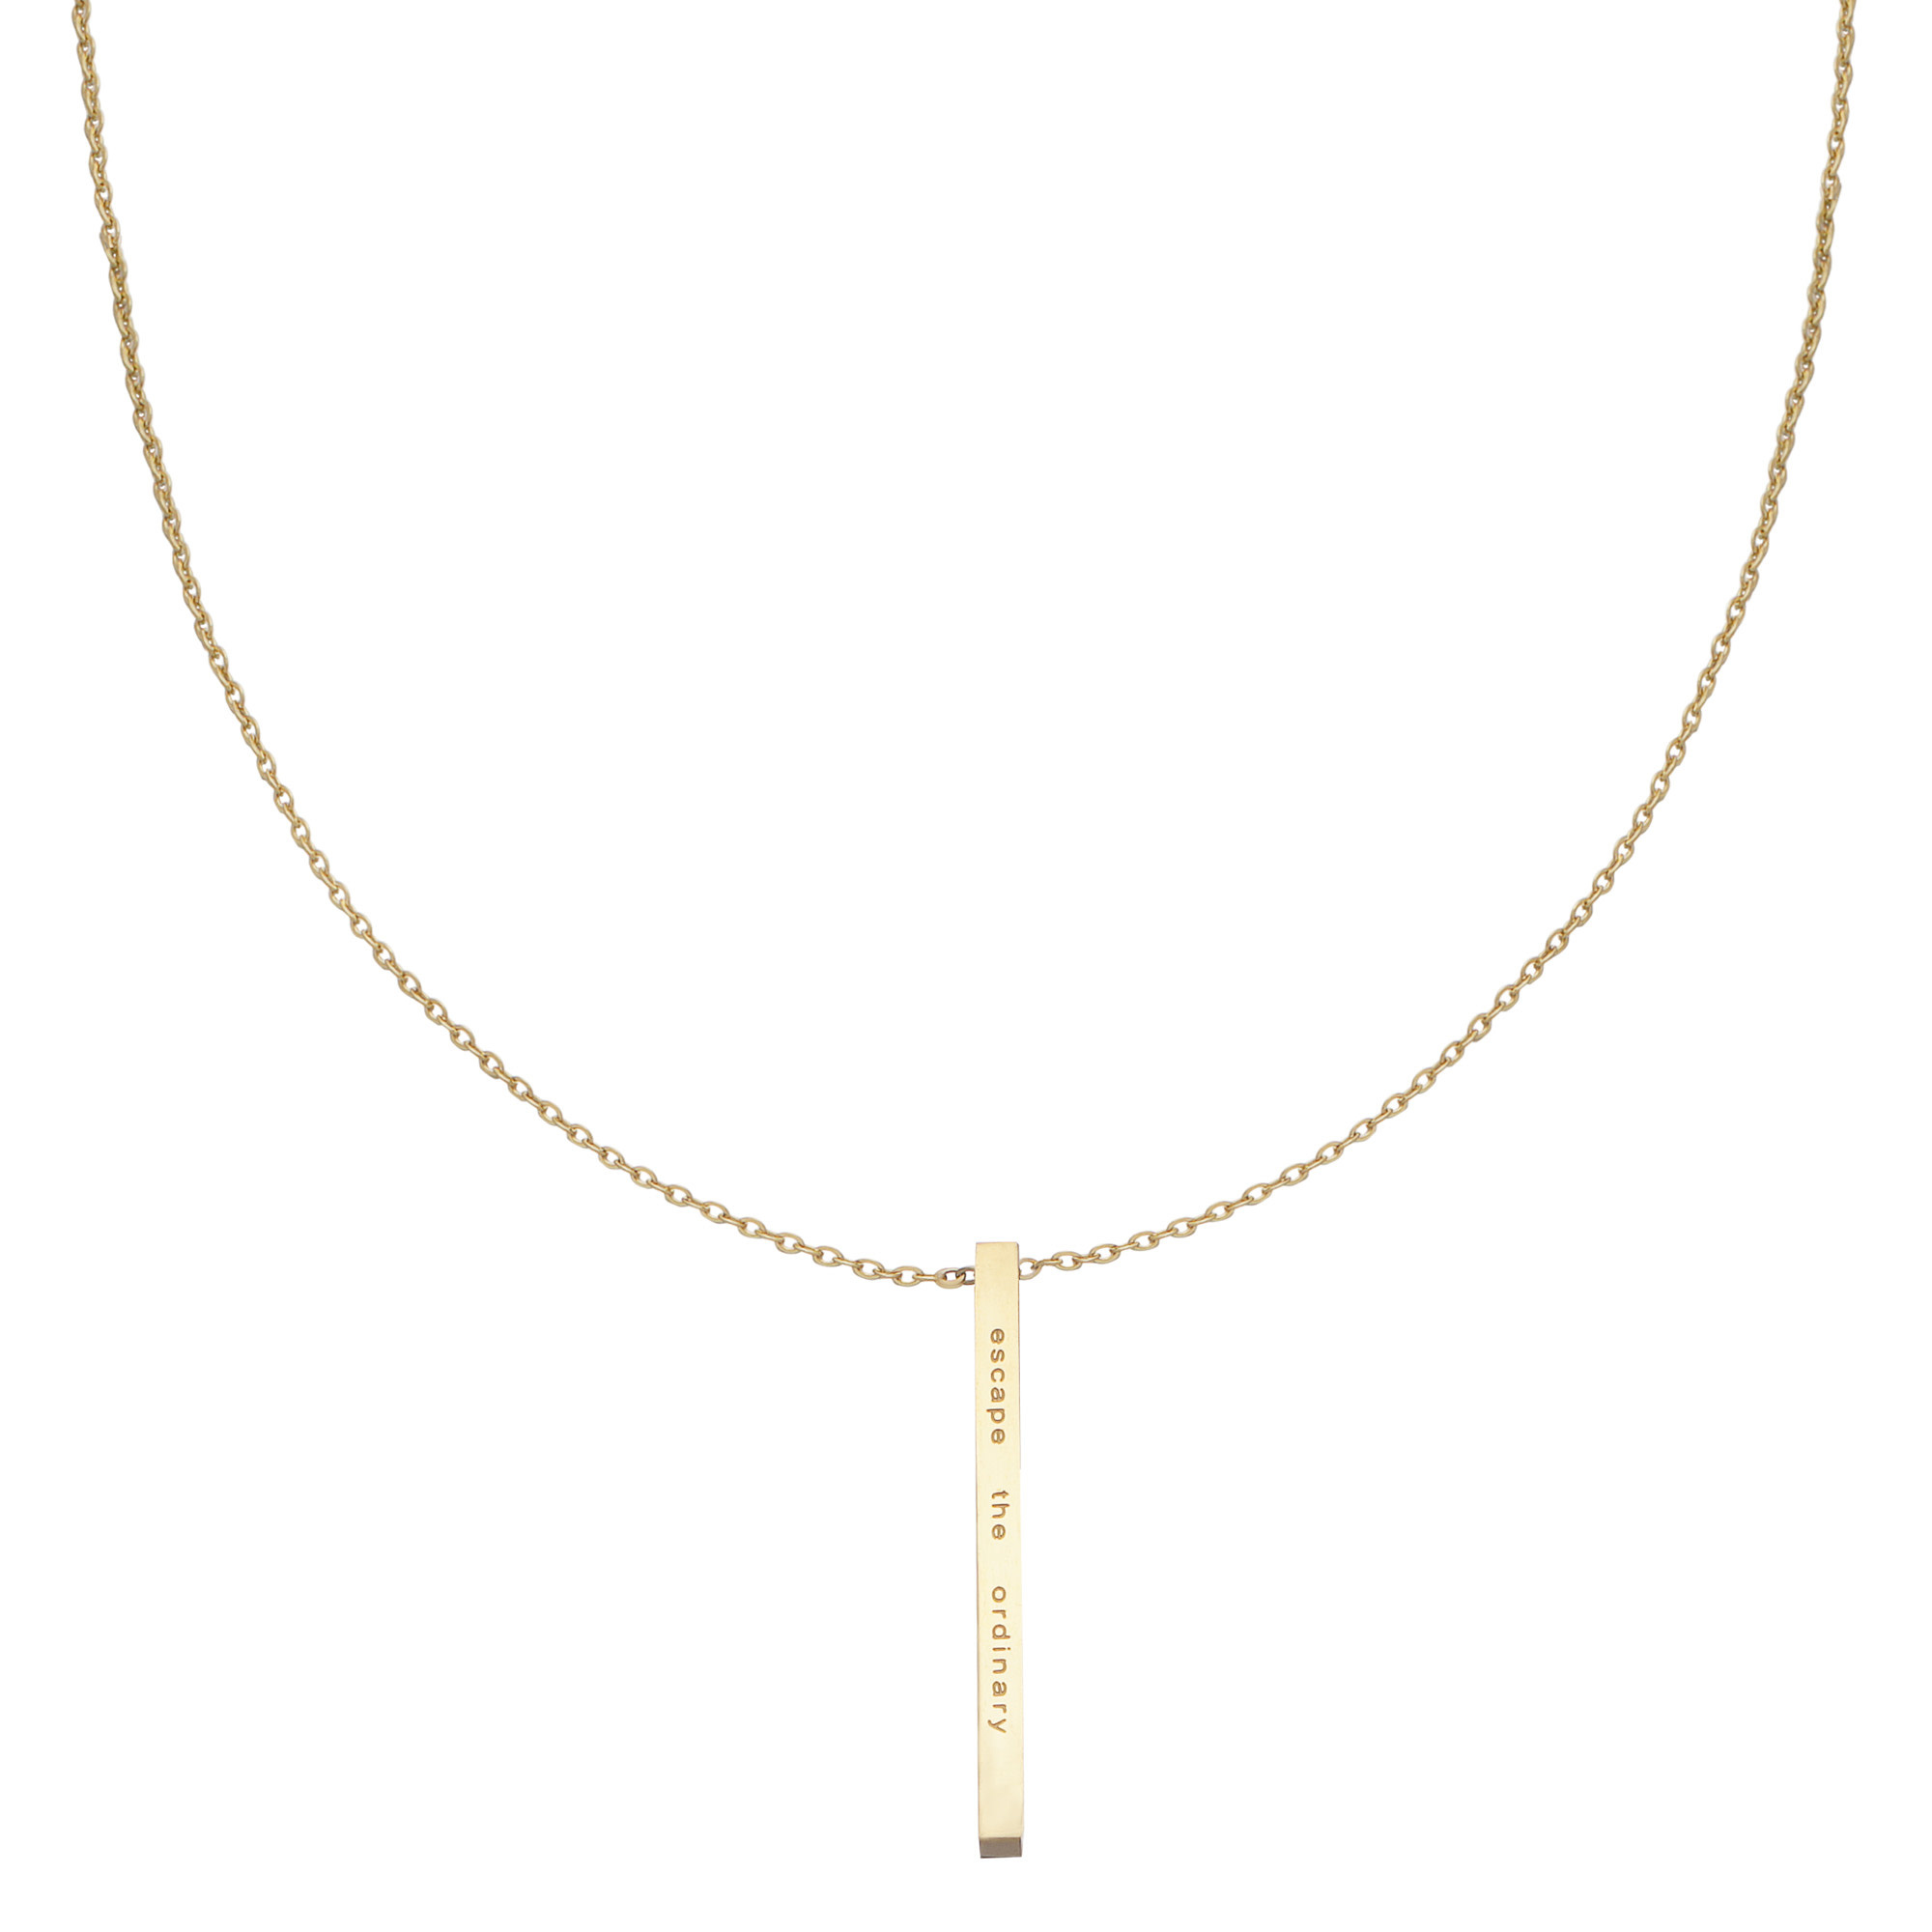 With love Necklace escape the ordinary gold